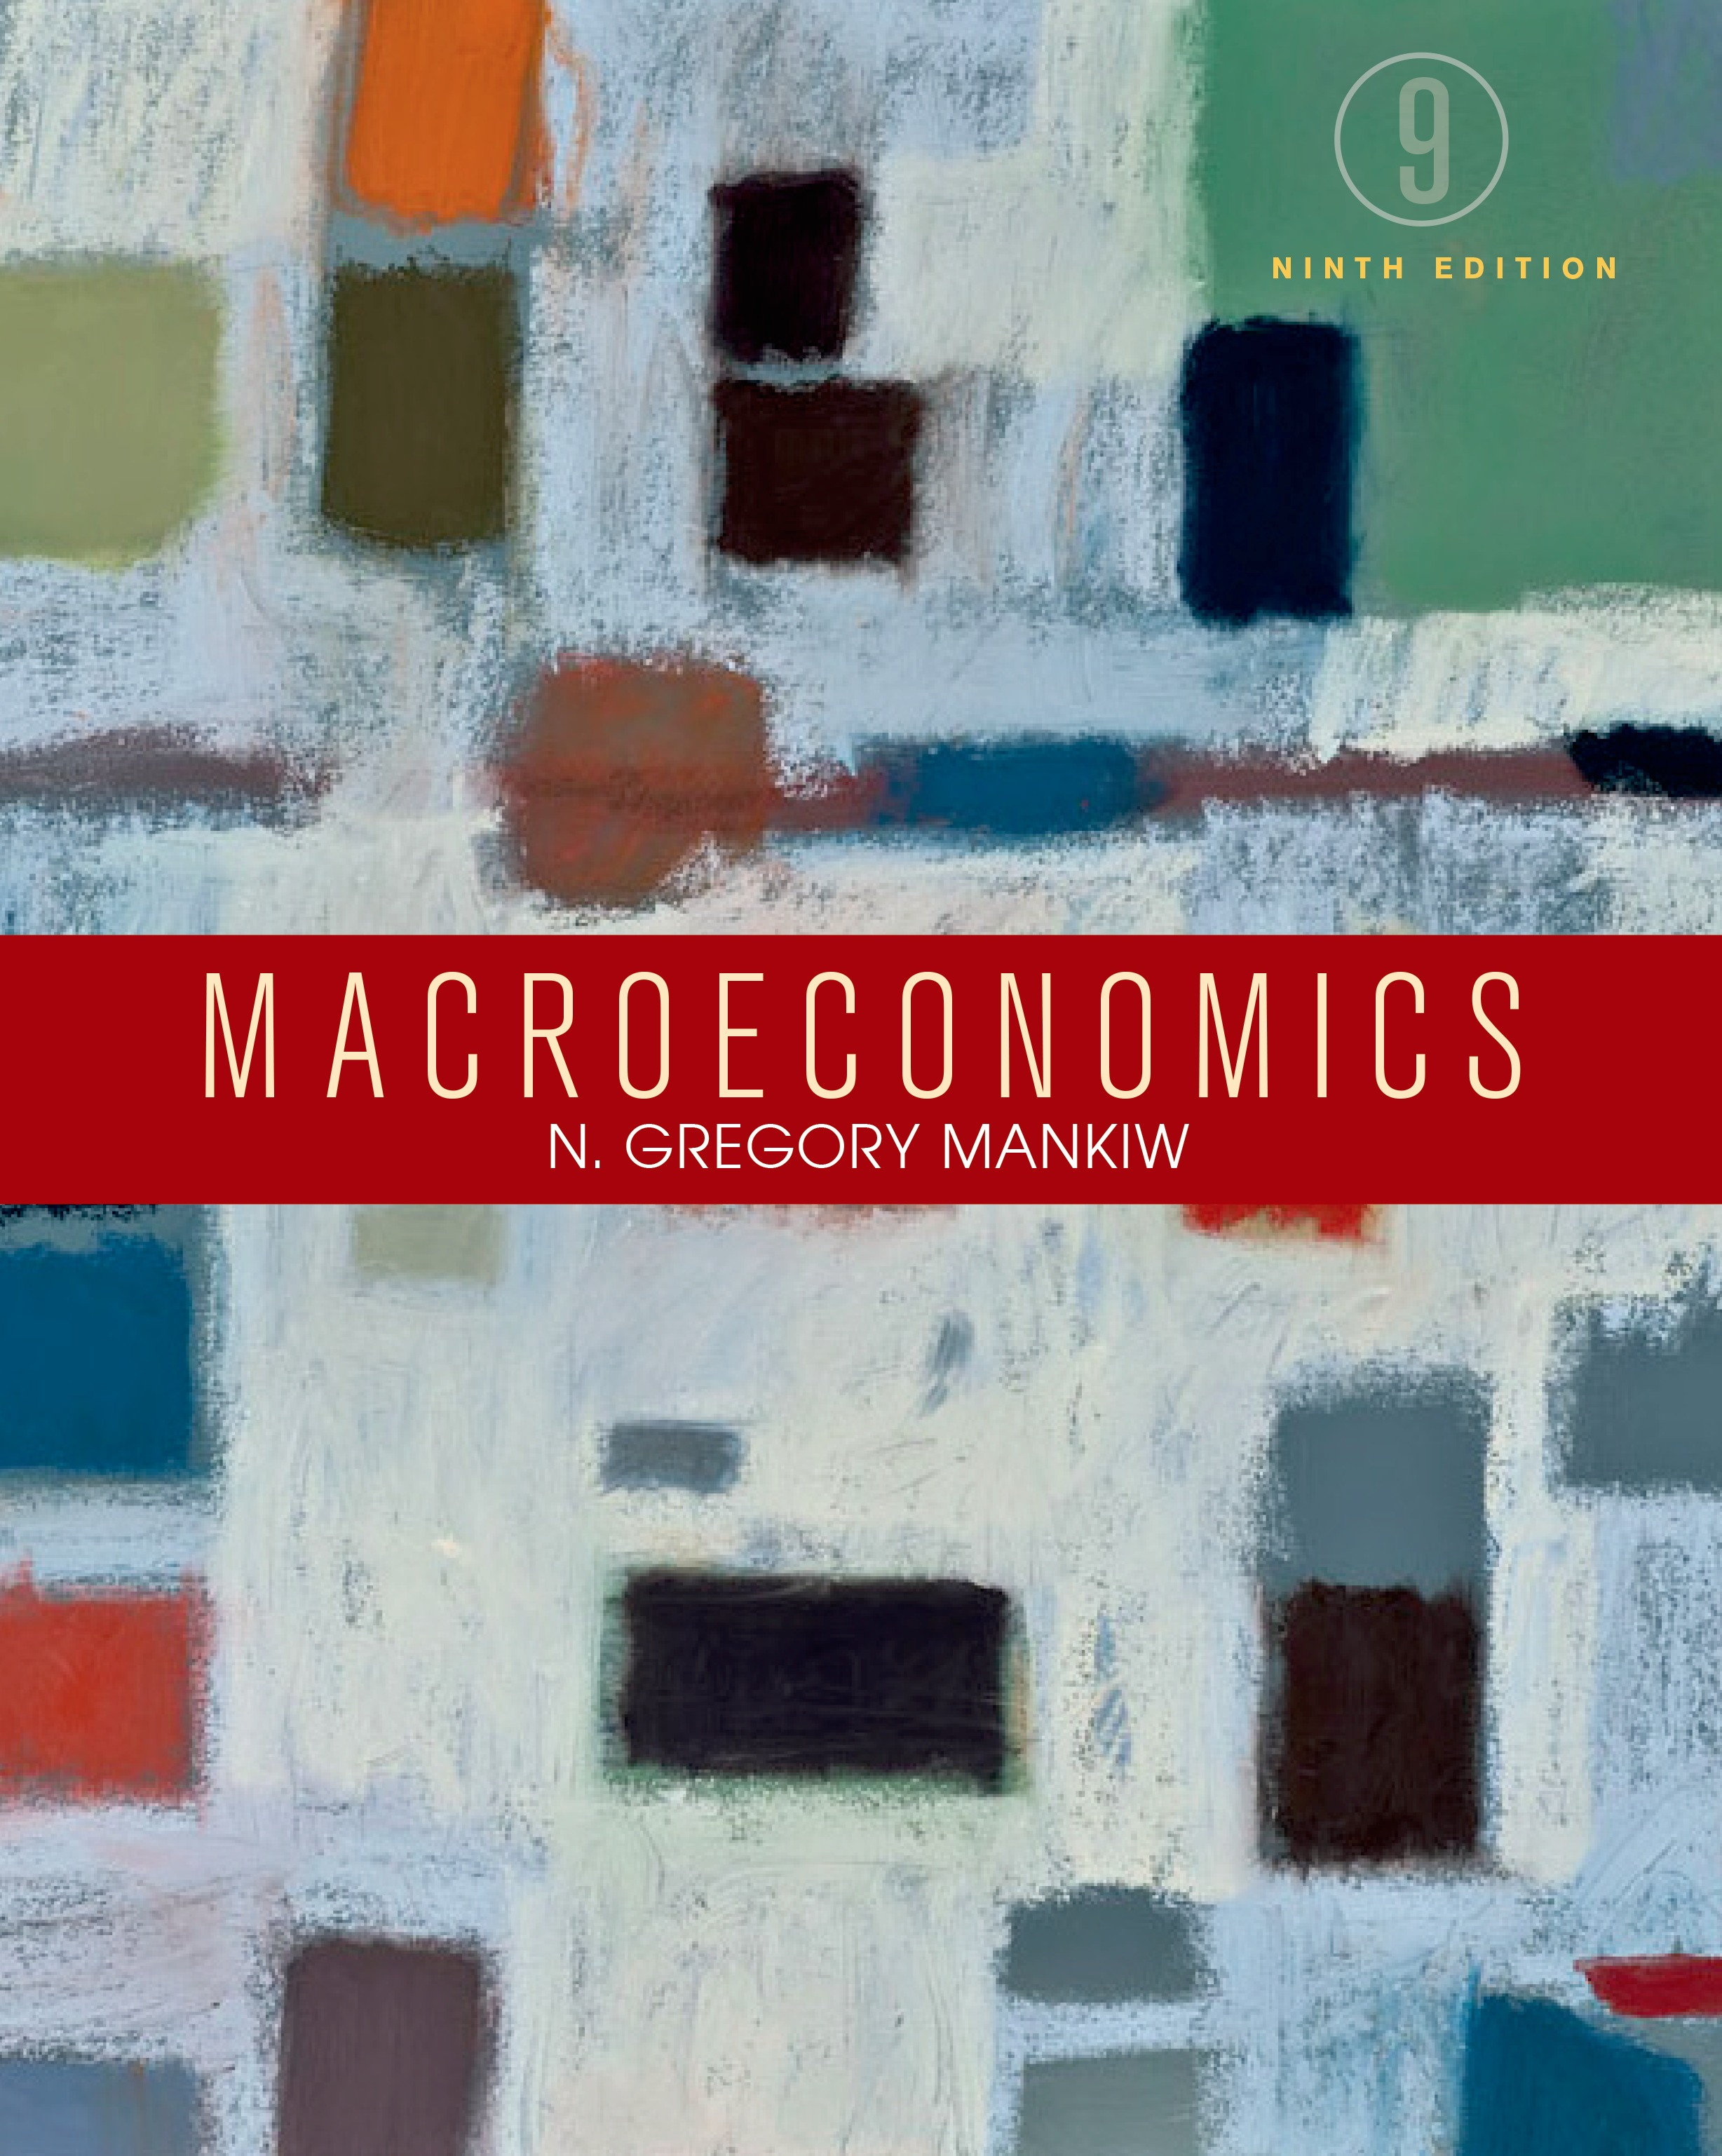 microeconomics solutions Mylab economics plus with pearson etext -- instant access -- for microeconomics courseconnect: principles of microeconomics pearson learning solutions ©2014.